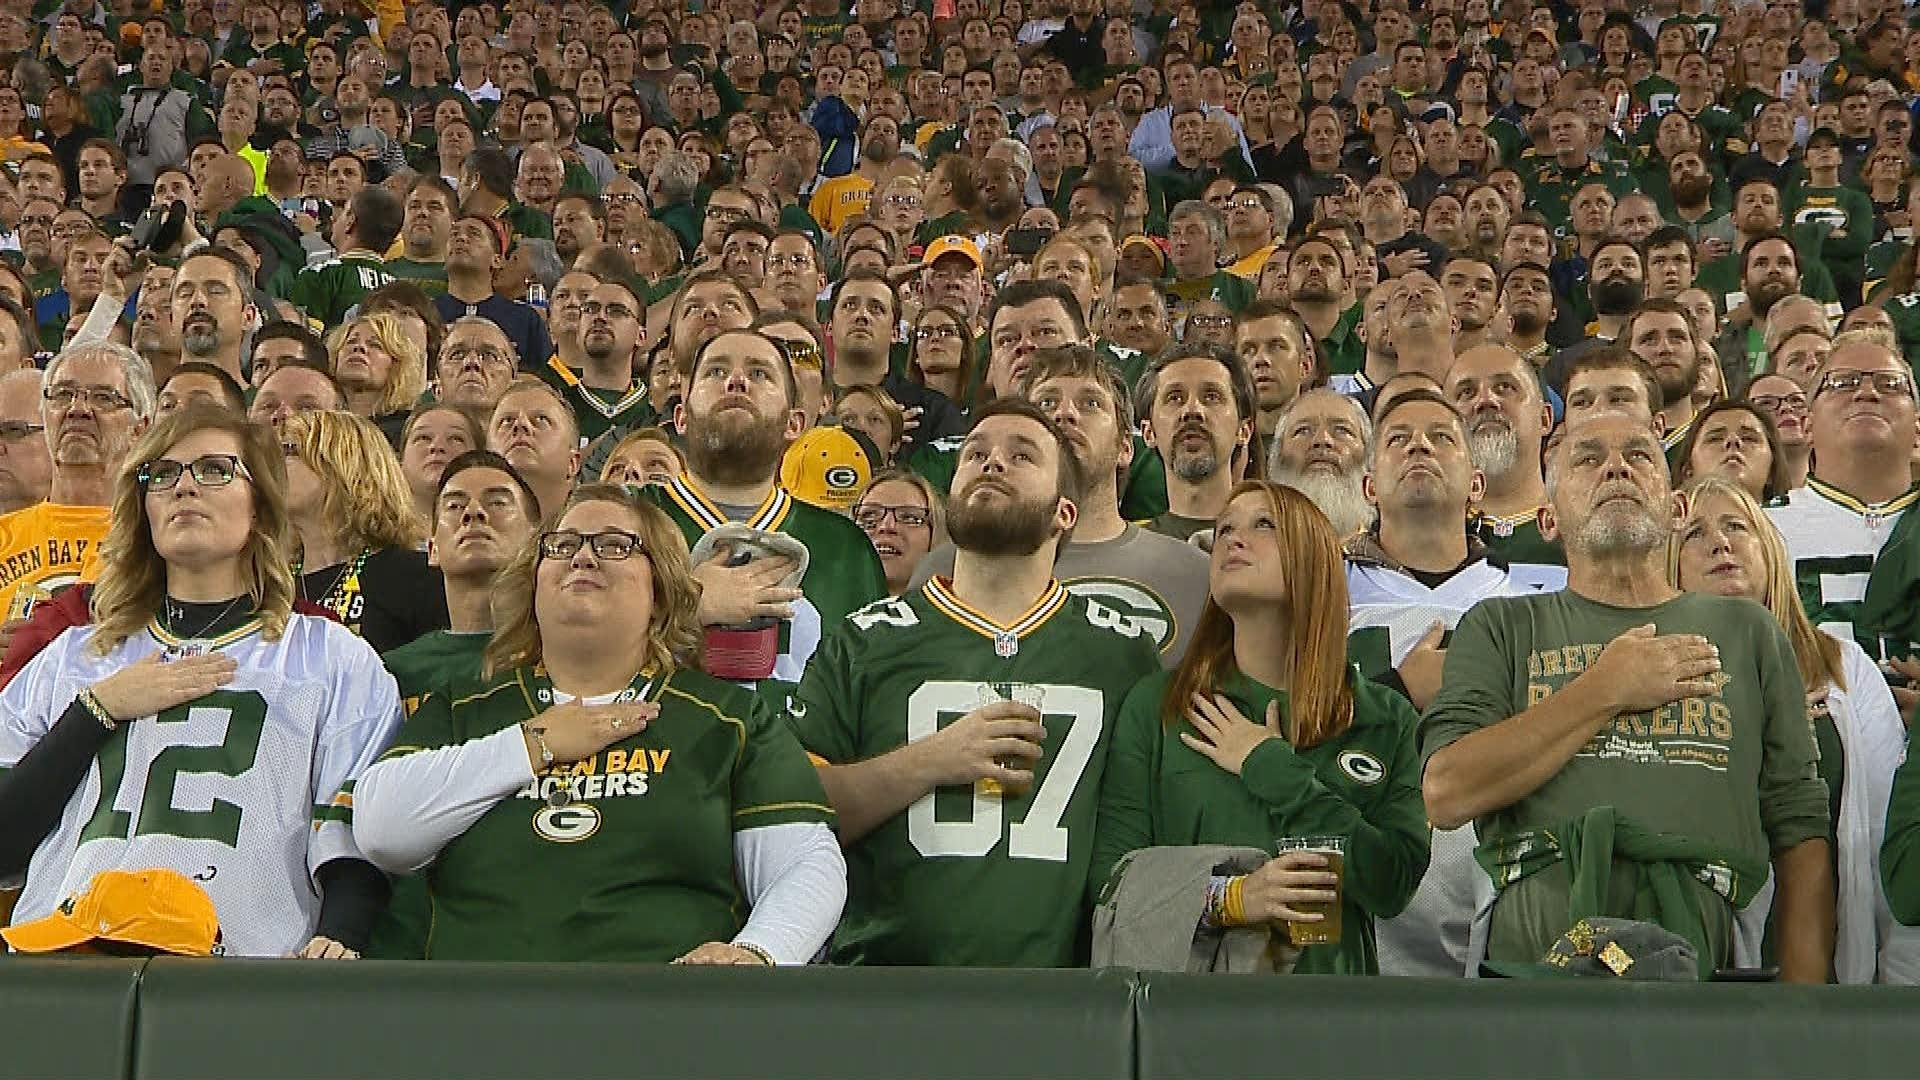 Locals react to planned protest during Packers game Thursday